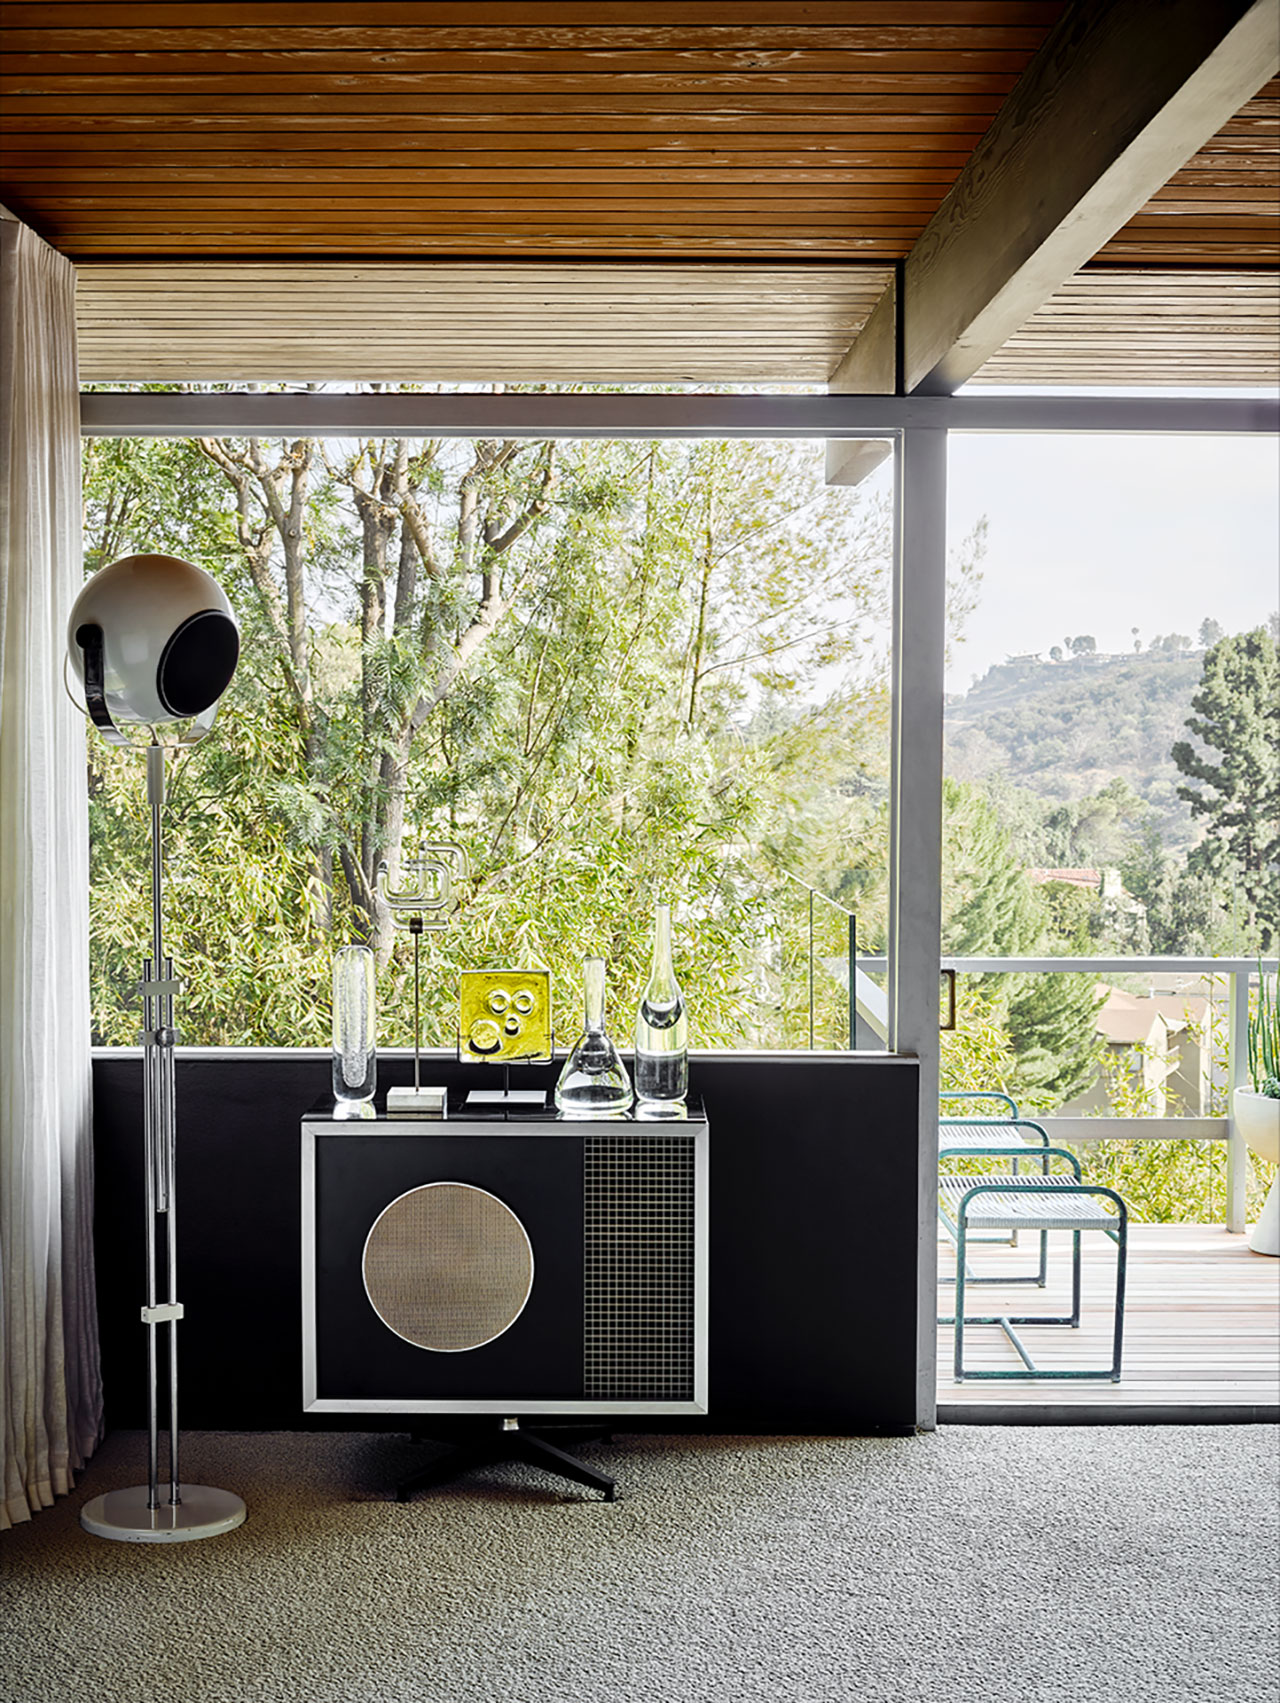 Photography by Douglas Friedman. Featured: Eames Speaker used as side table.